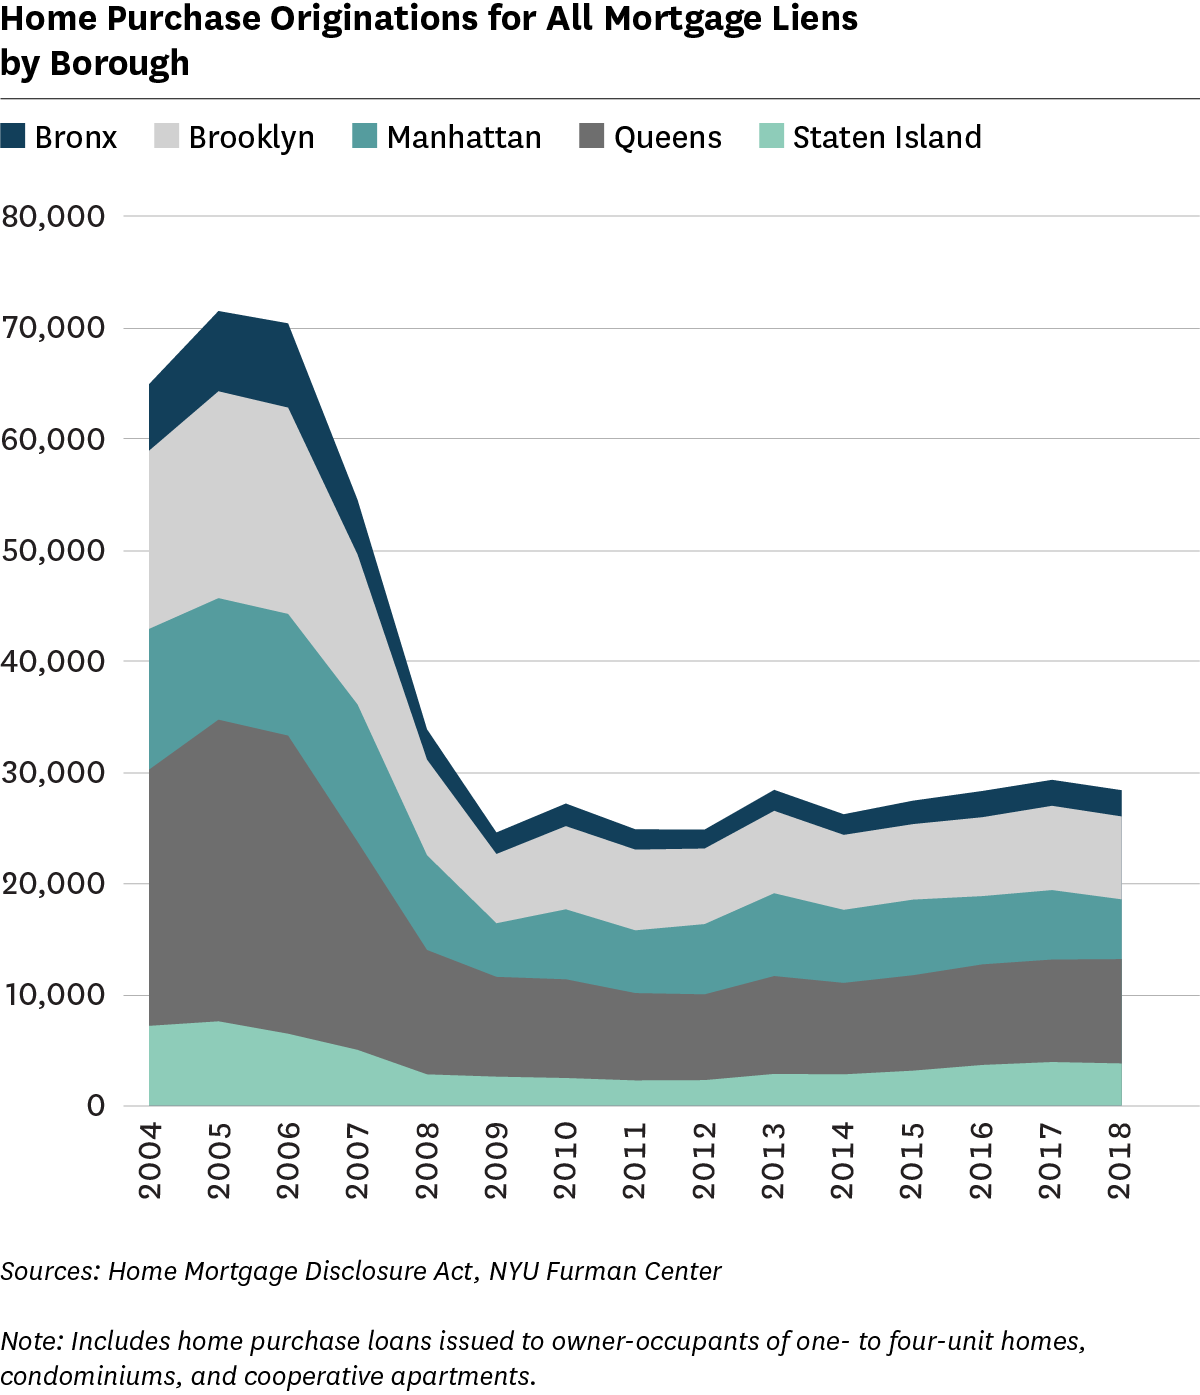 Line graph showing home purchase originations for all Mortgage Liens by Borough, 2004-2018